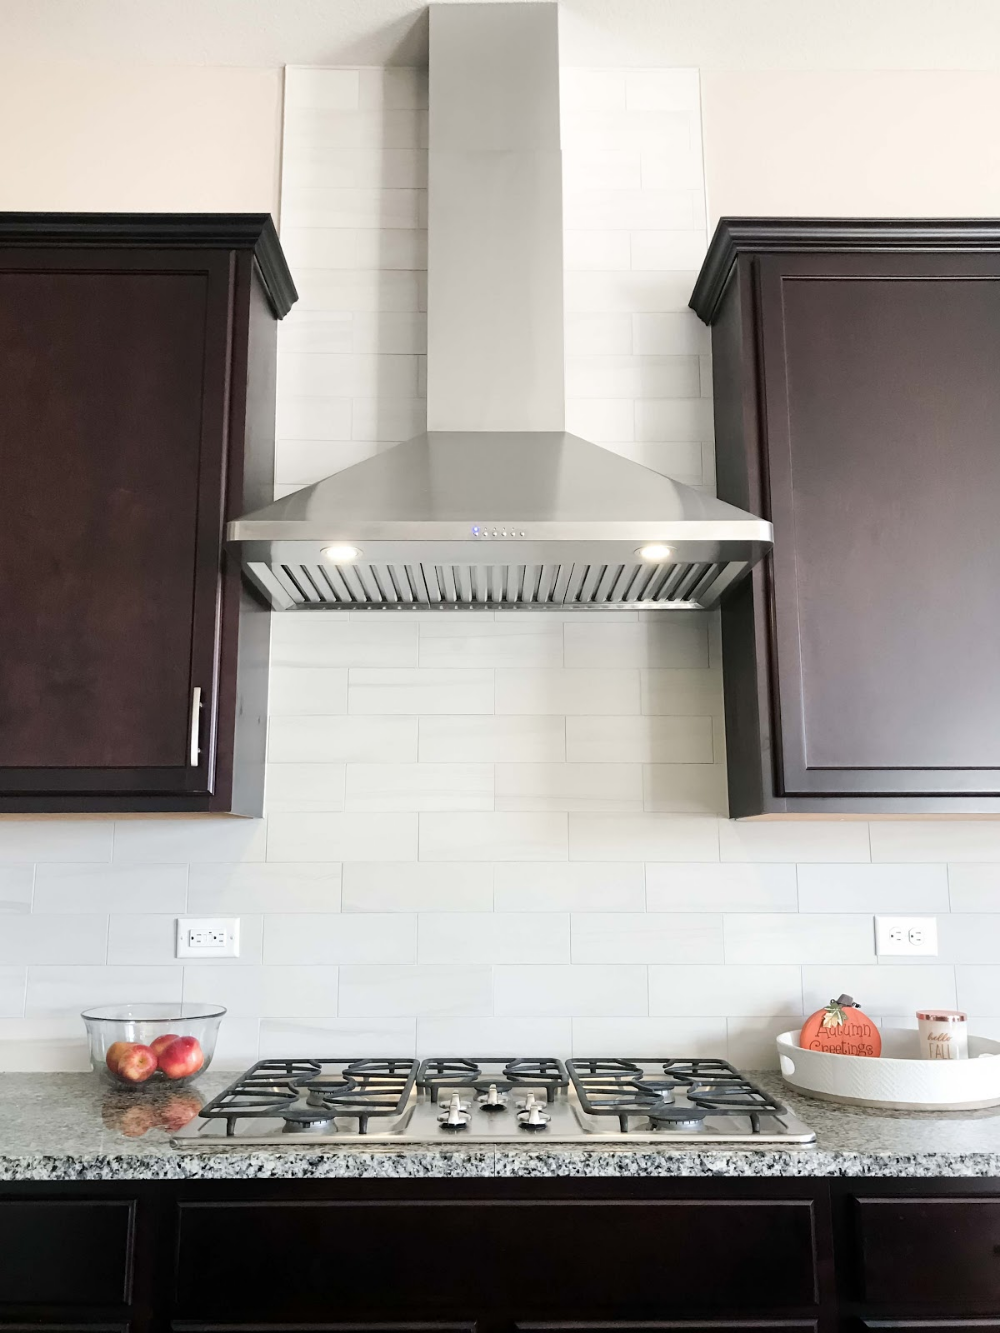 Range Hood Size Definitive Guide Kitchen Remodel Small Kitchen Range Hood Range Hood